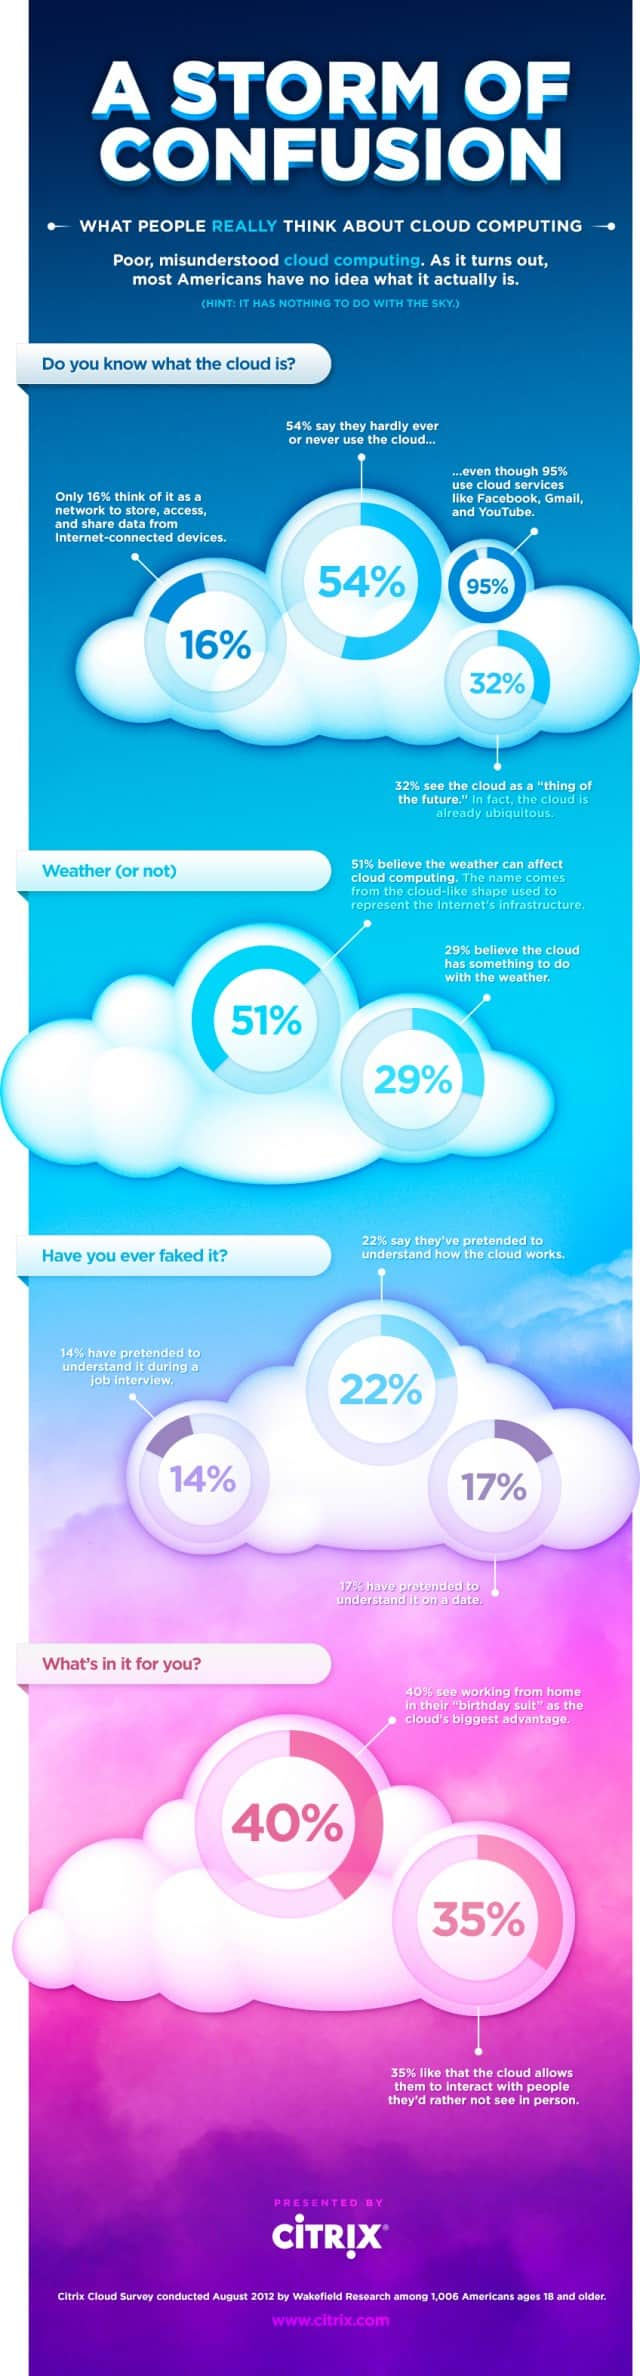 What people think of Cloud Computing?